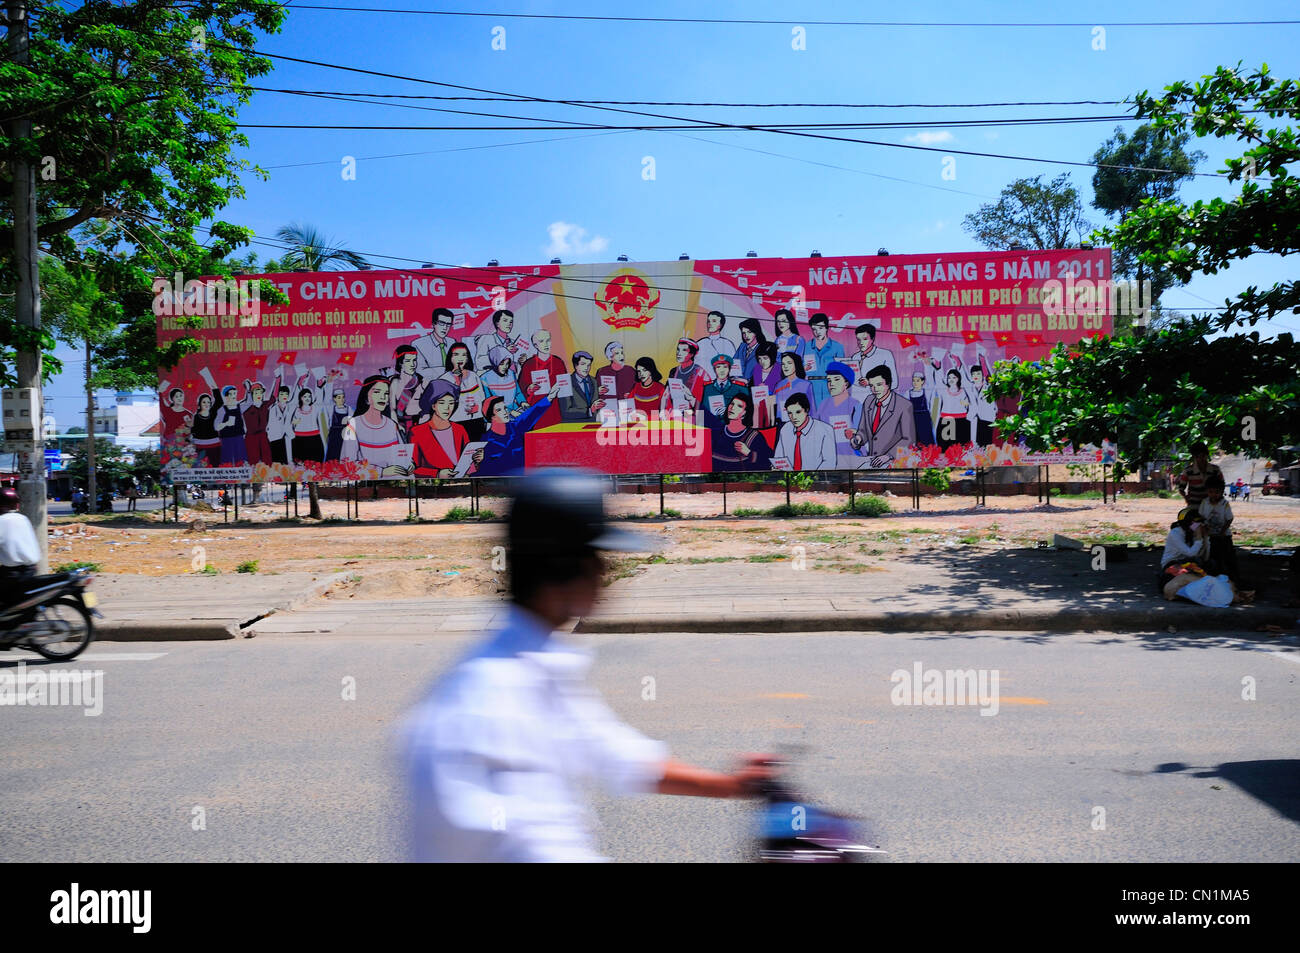 Communist billboard encouraging people to vote n forthcoming elections. Kon Tum, North Central Highlands, Vietnam - Stock Image